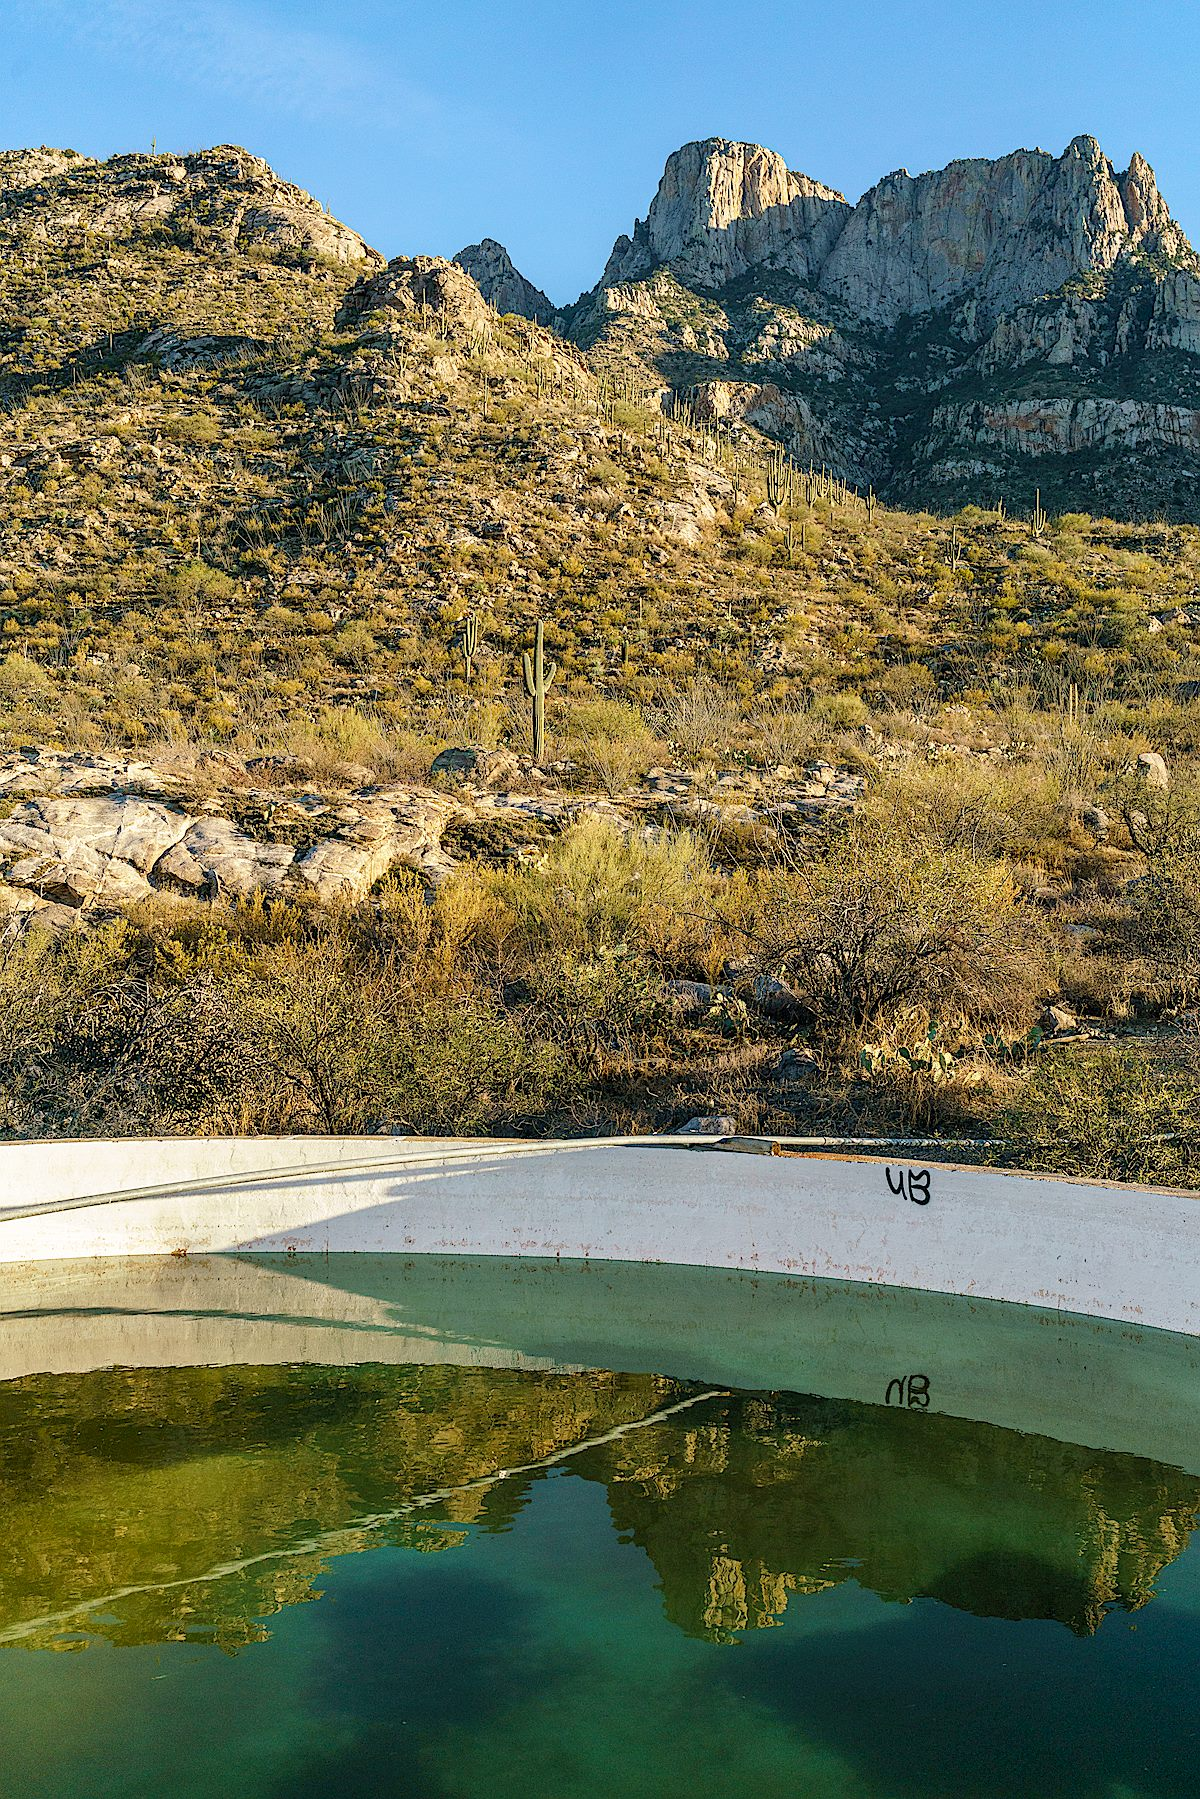 Water, reflection and Table Mountain - Cottonwood Tank. December 2017.